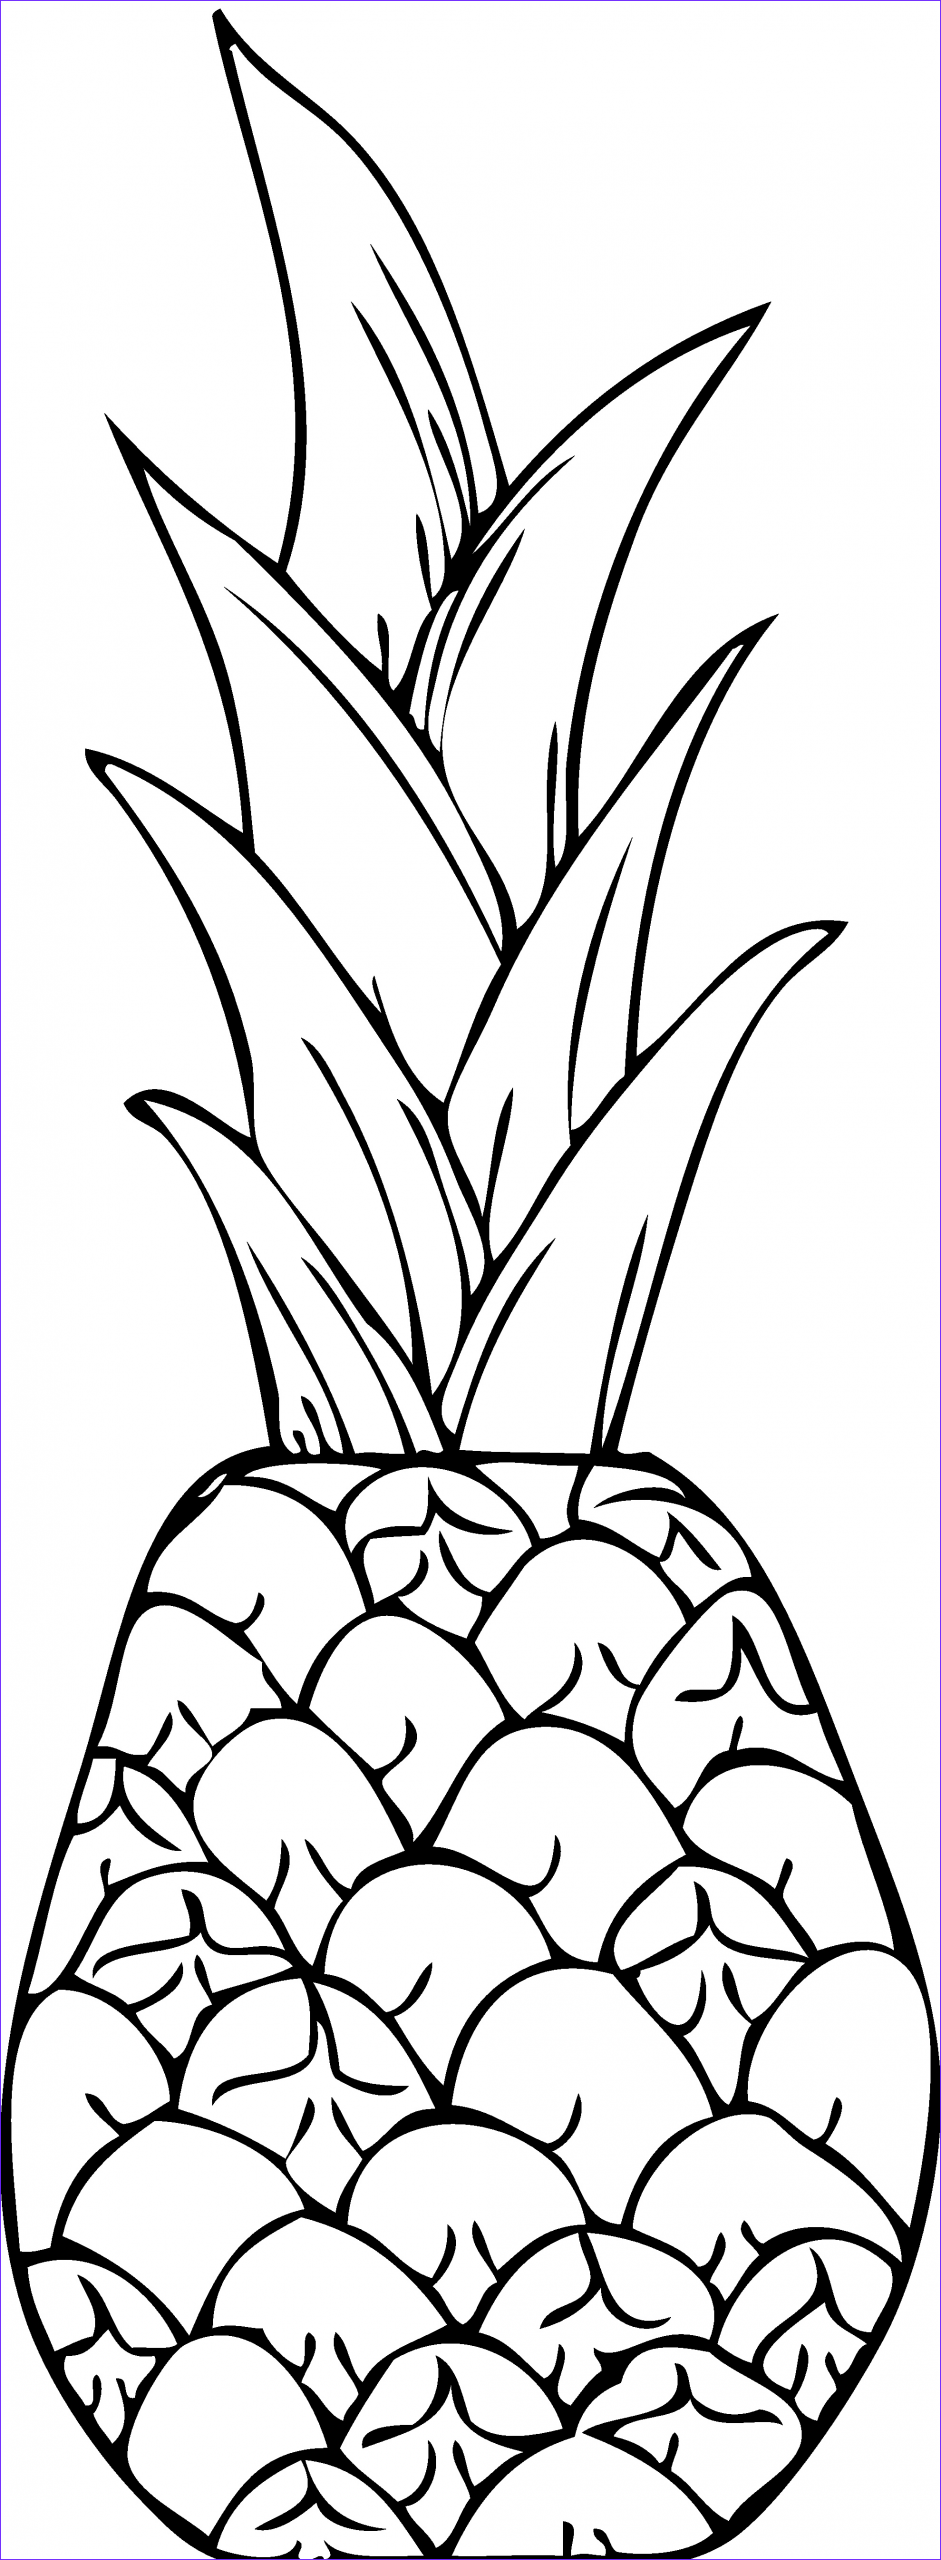 pineapple clipart image 5165